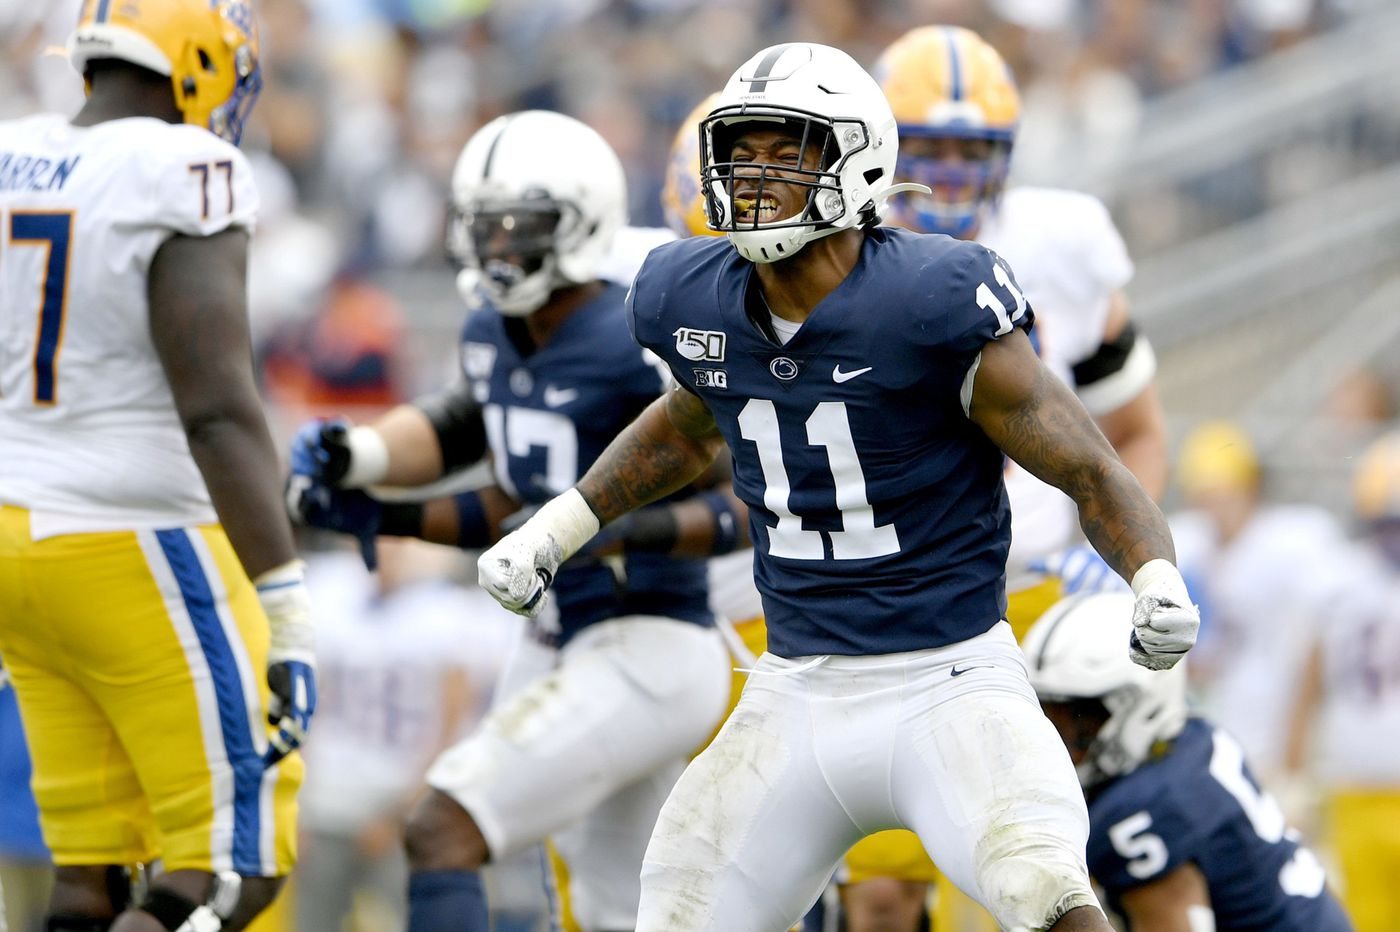 Penn State at Minnesota: Five things to watch